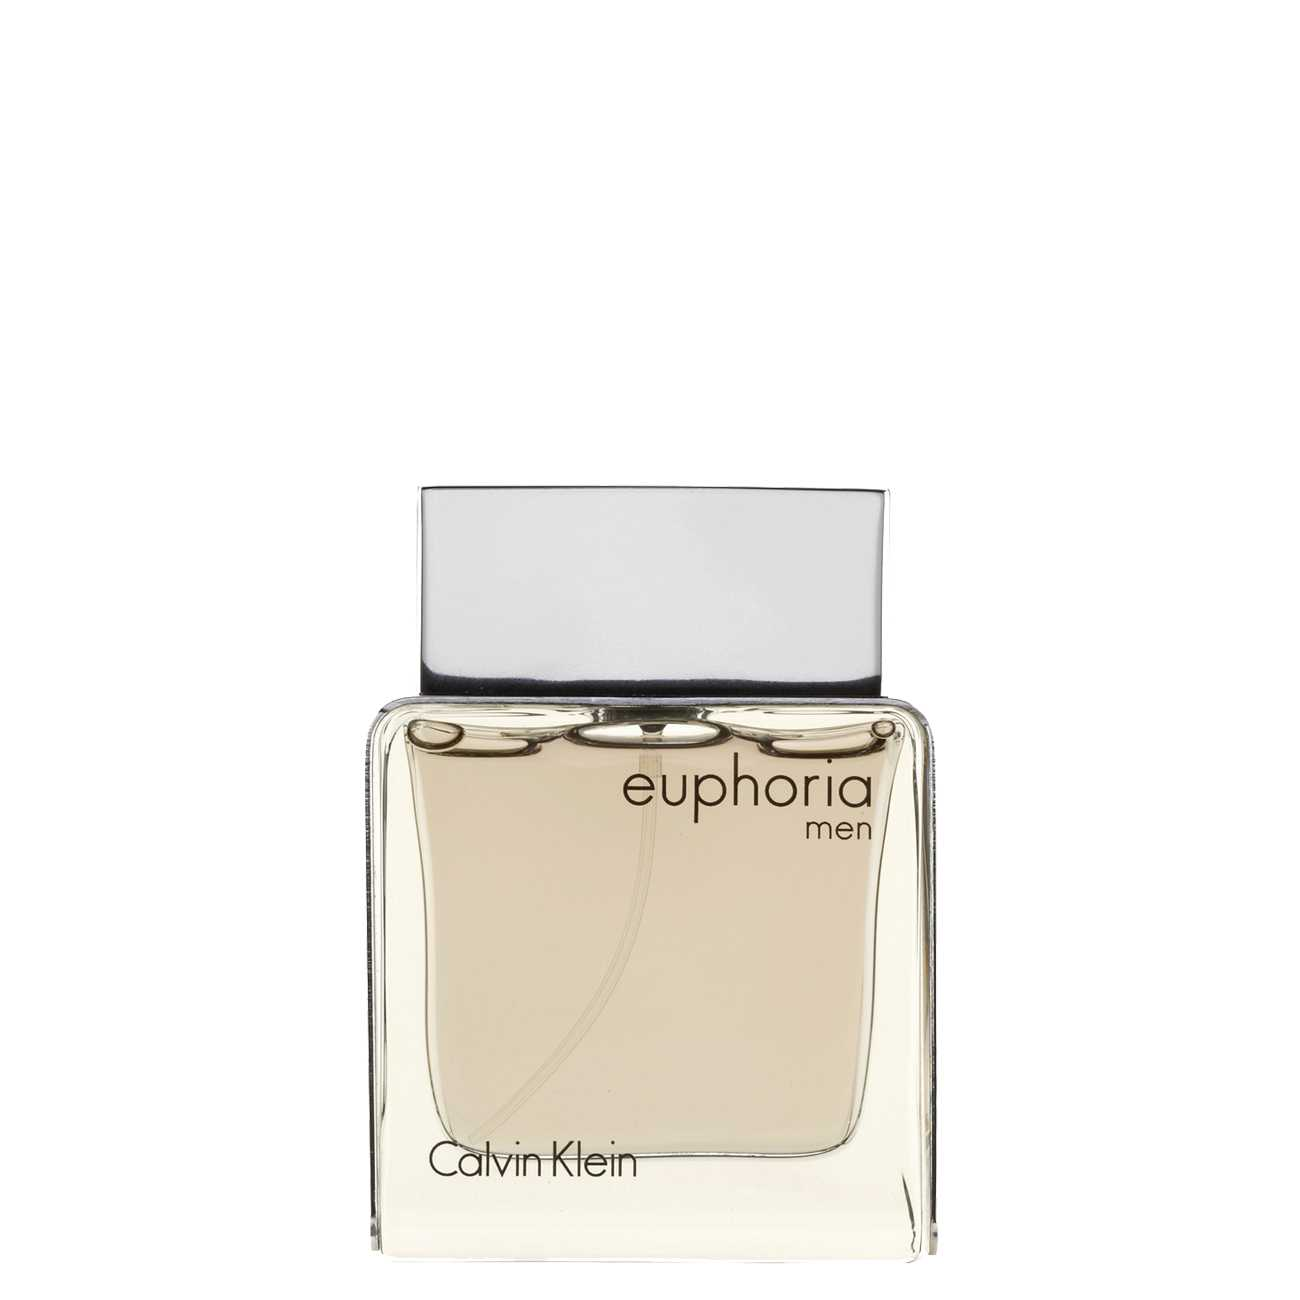 EUPHORIA MEN 50ml